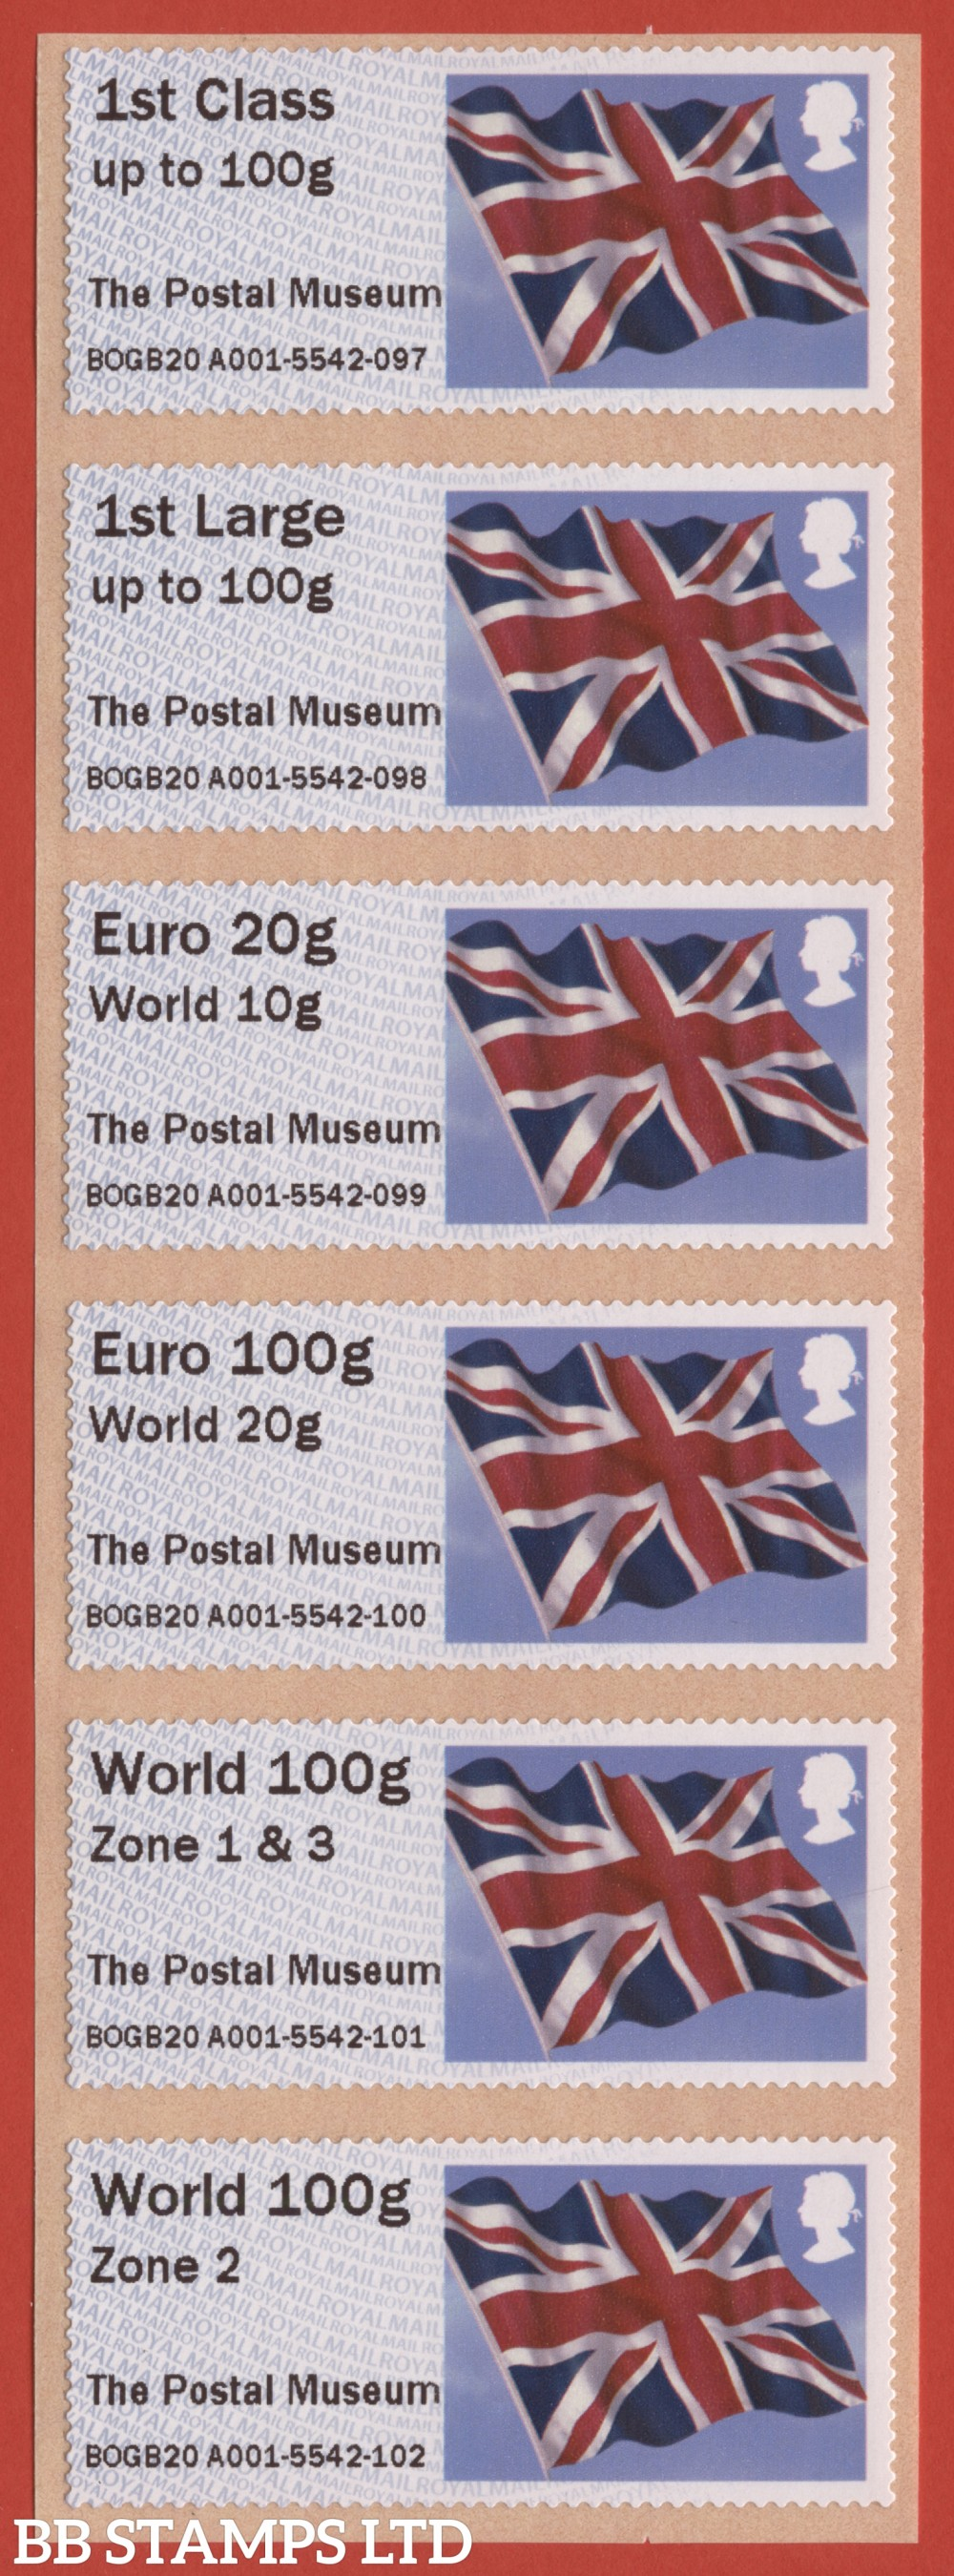 Union Flag: The Postal Museum, set of 6 (TIIIA) with new overseas stamps: 1st/1stL/Euro 20g World 10g, and 3 new values: Euro 100g World 20g, World 100g Zone 1 & 3 [with &; doesn't exist with hyphen] and World Zone 2: NO YEAR CODE (BK30, P6)